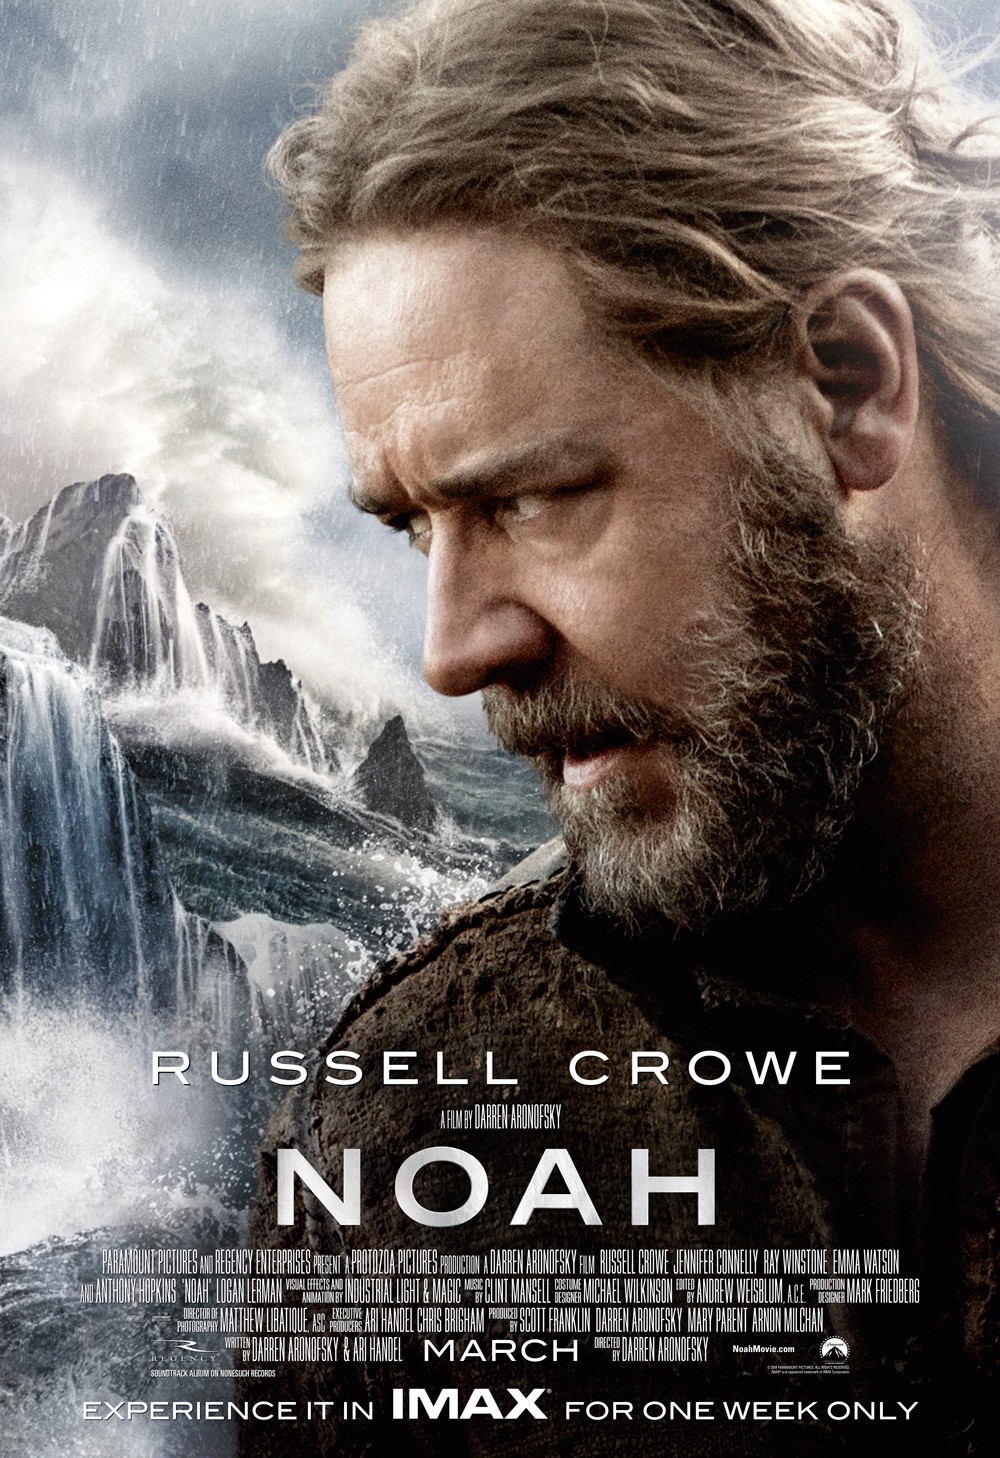 Noah-Official Poster Banner PROMO POSTER CHAR XLG-14MARCO2014